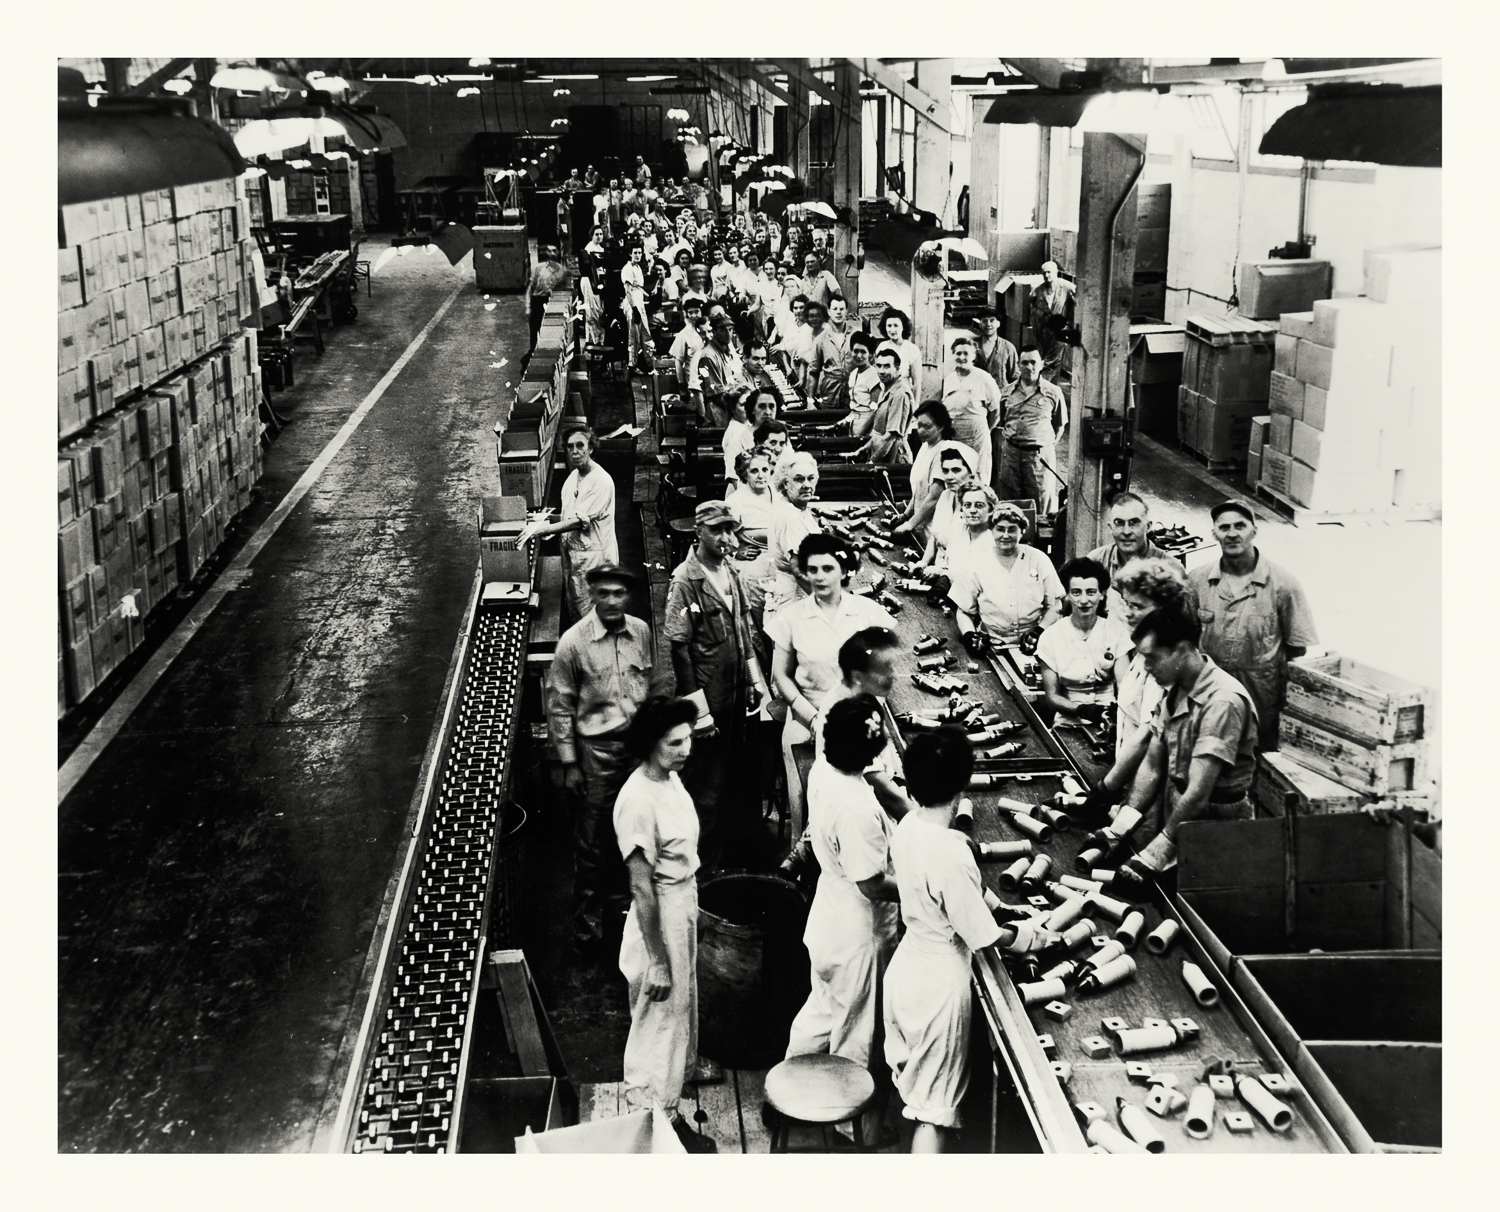 """Photograph No. PD 142. """"Photograph depicting a line of workers assembling Variable Timing fuses for rockets. These fuses used reflected radio waves to detect proximity to a target which would then trigger the explosion. Factory located at the Hinghan Naval Ammunition Depot"""" c., 1940 Records of Naval Districts and Shore Establishments, RG 181, NARA Boston."""